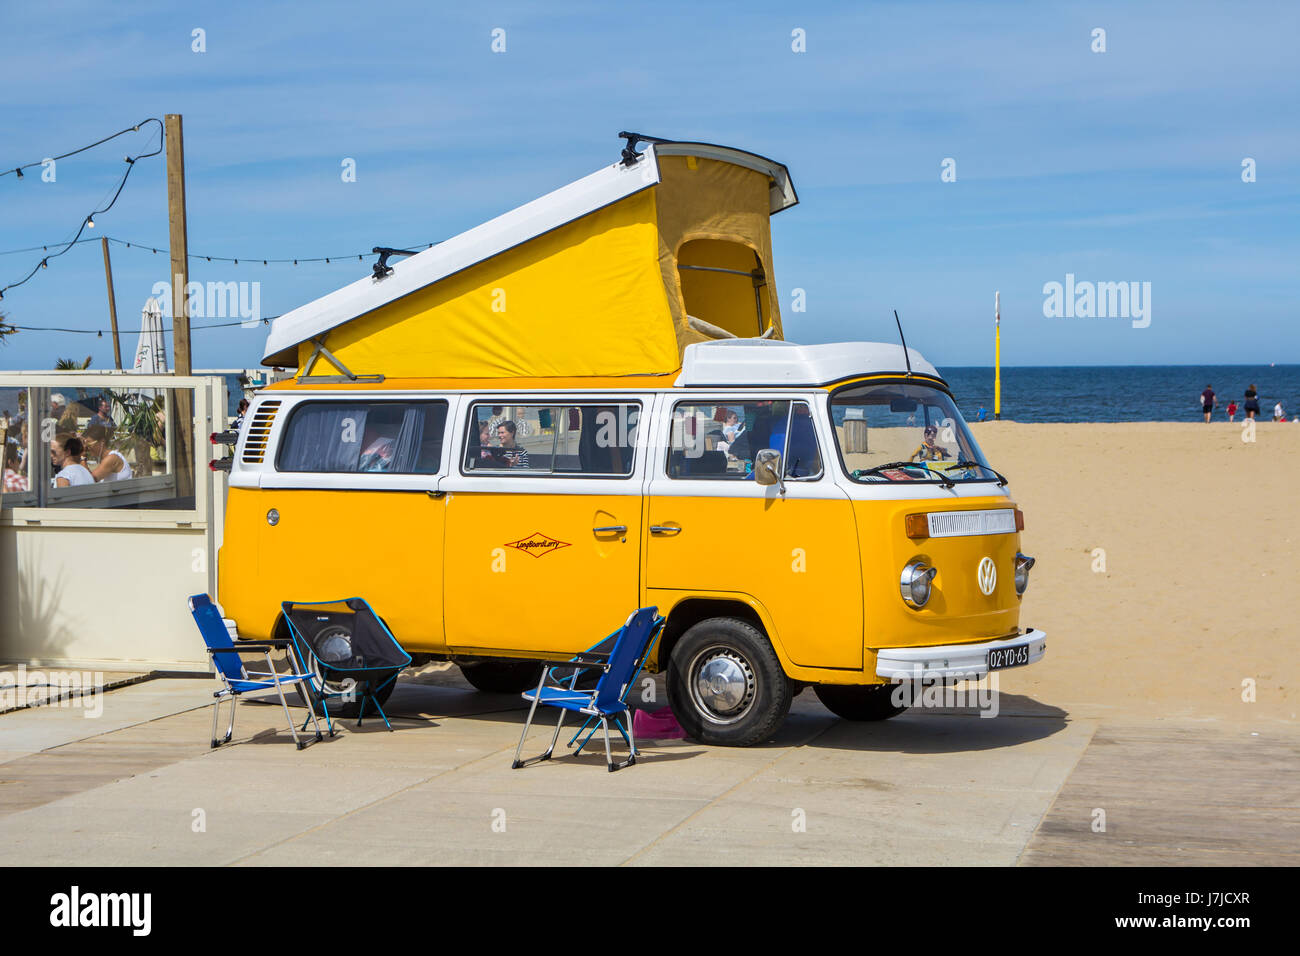 volkswagen combi photos volkswagen combi images alamy. Black Bedroom Furniture Sets. Home Design Ideas